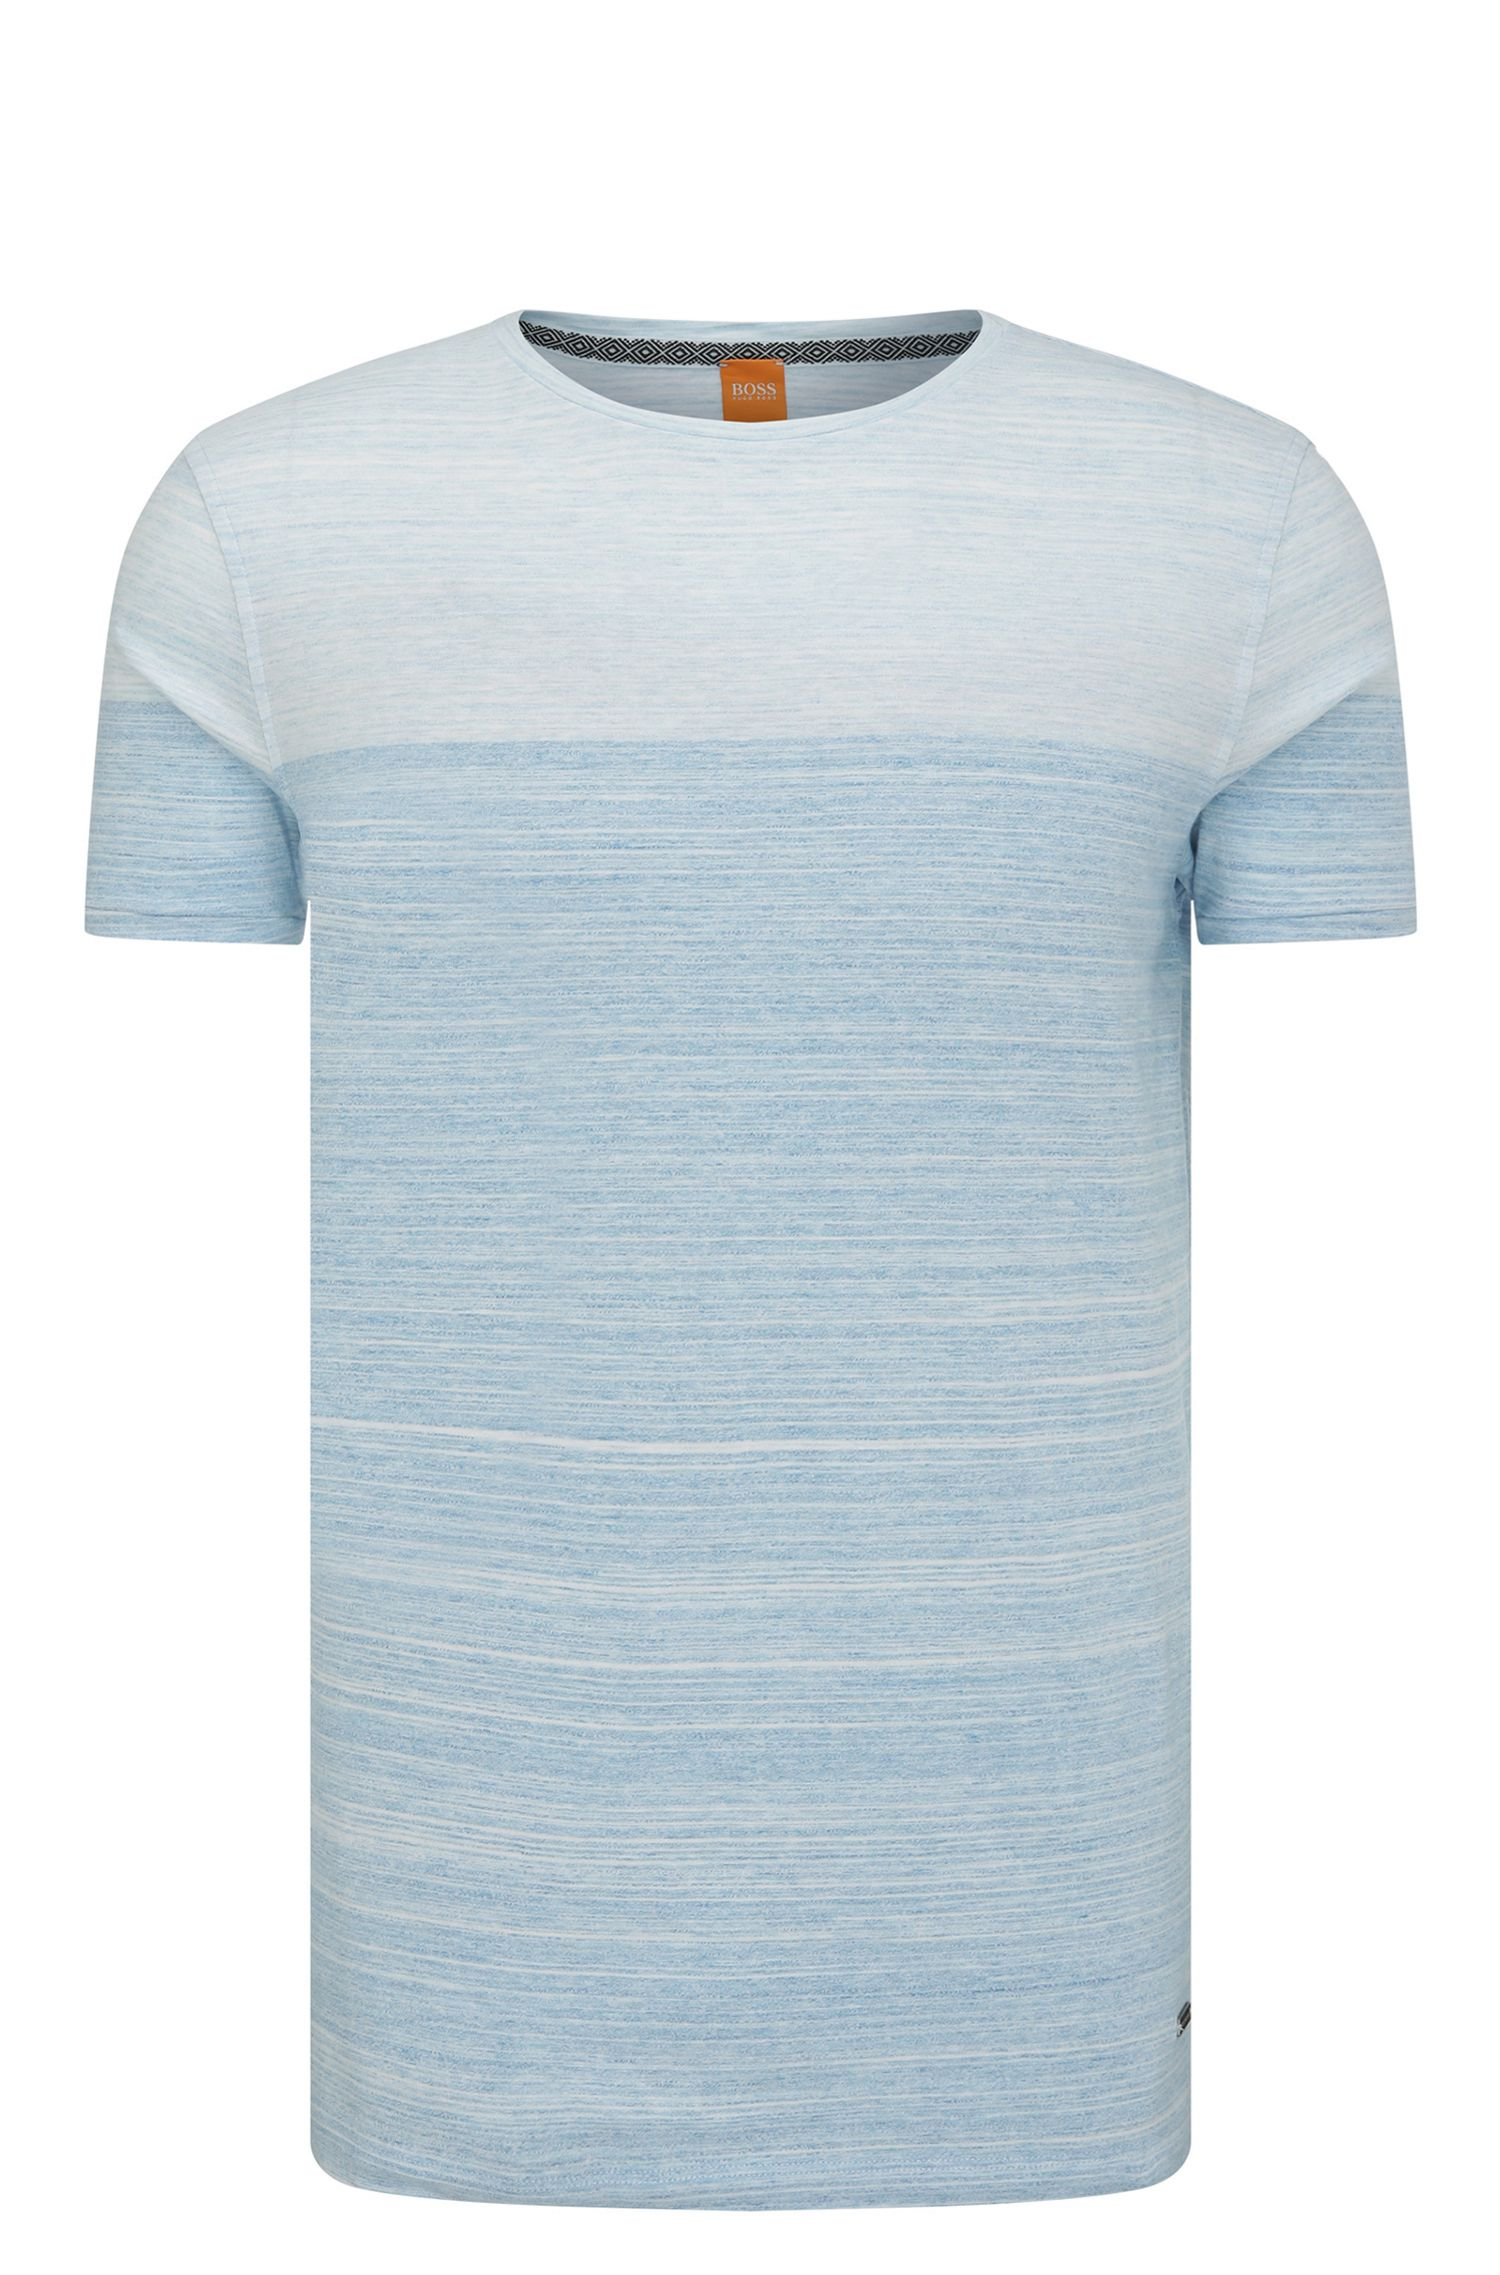 Cotton Ombre Striped T-Shirt | Trumble